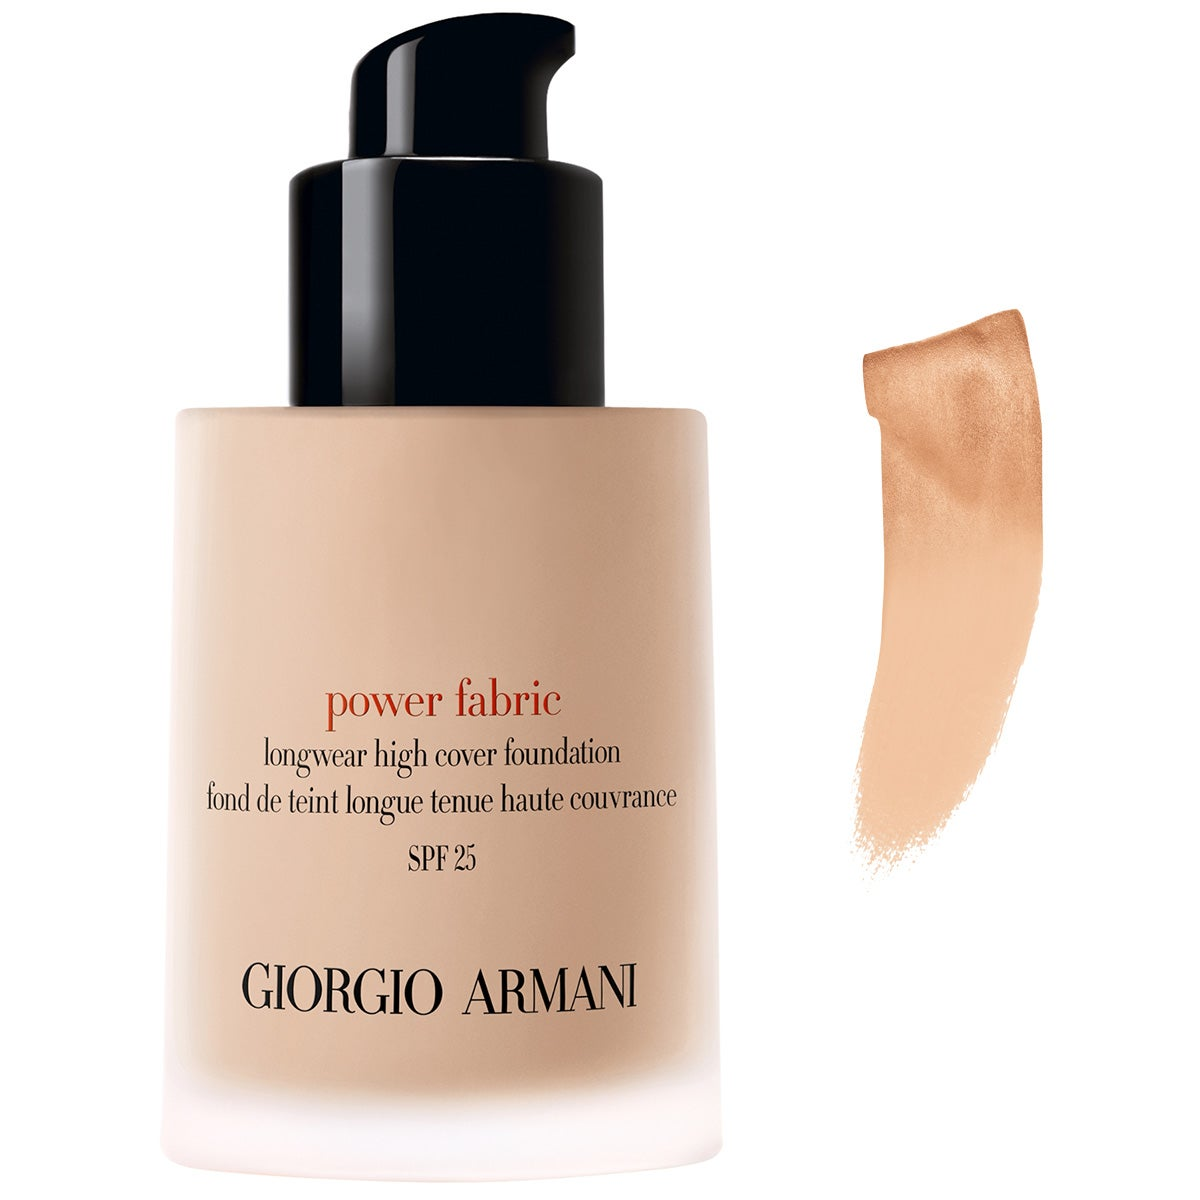 Giorgio Armani Beauty Power Fabric Foundation